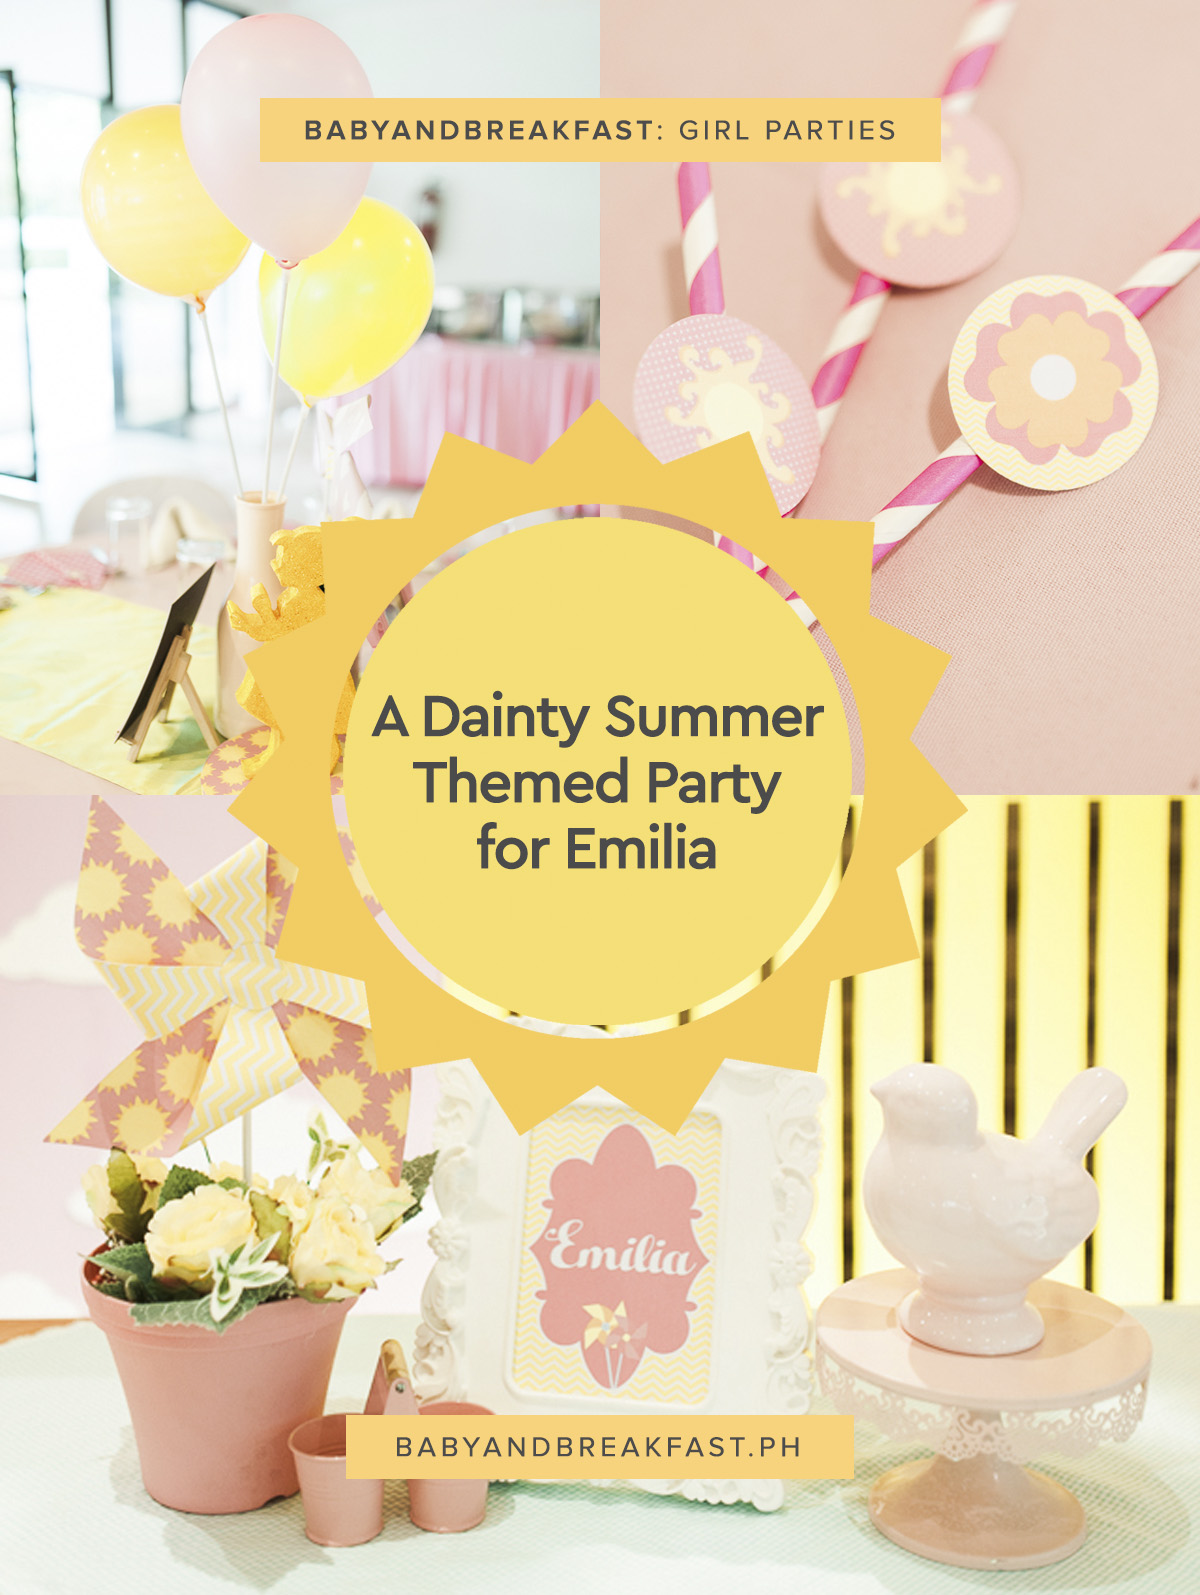 Baby and Breakfast: Girl Parties A Dainty Summer Themed Party for Emilia